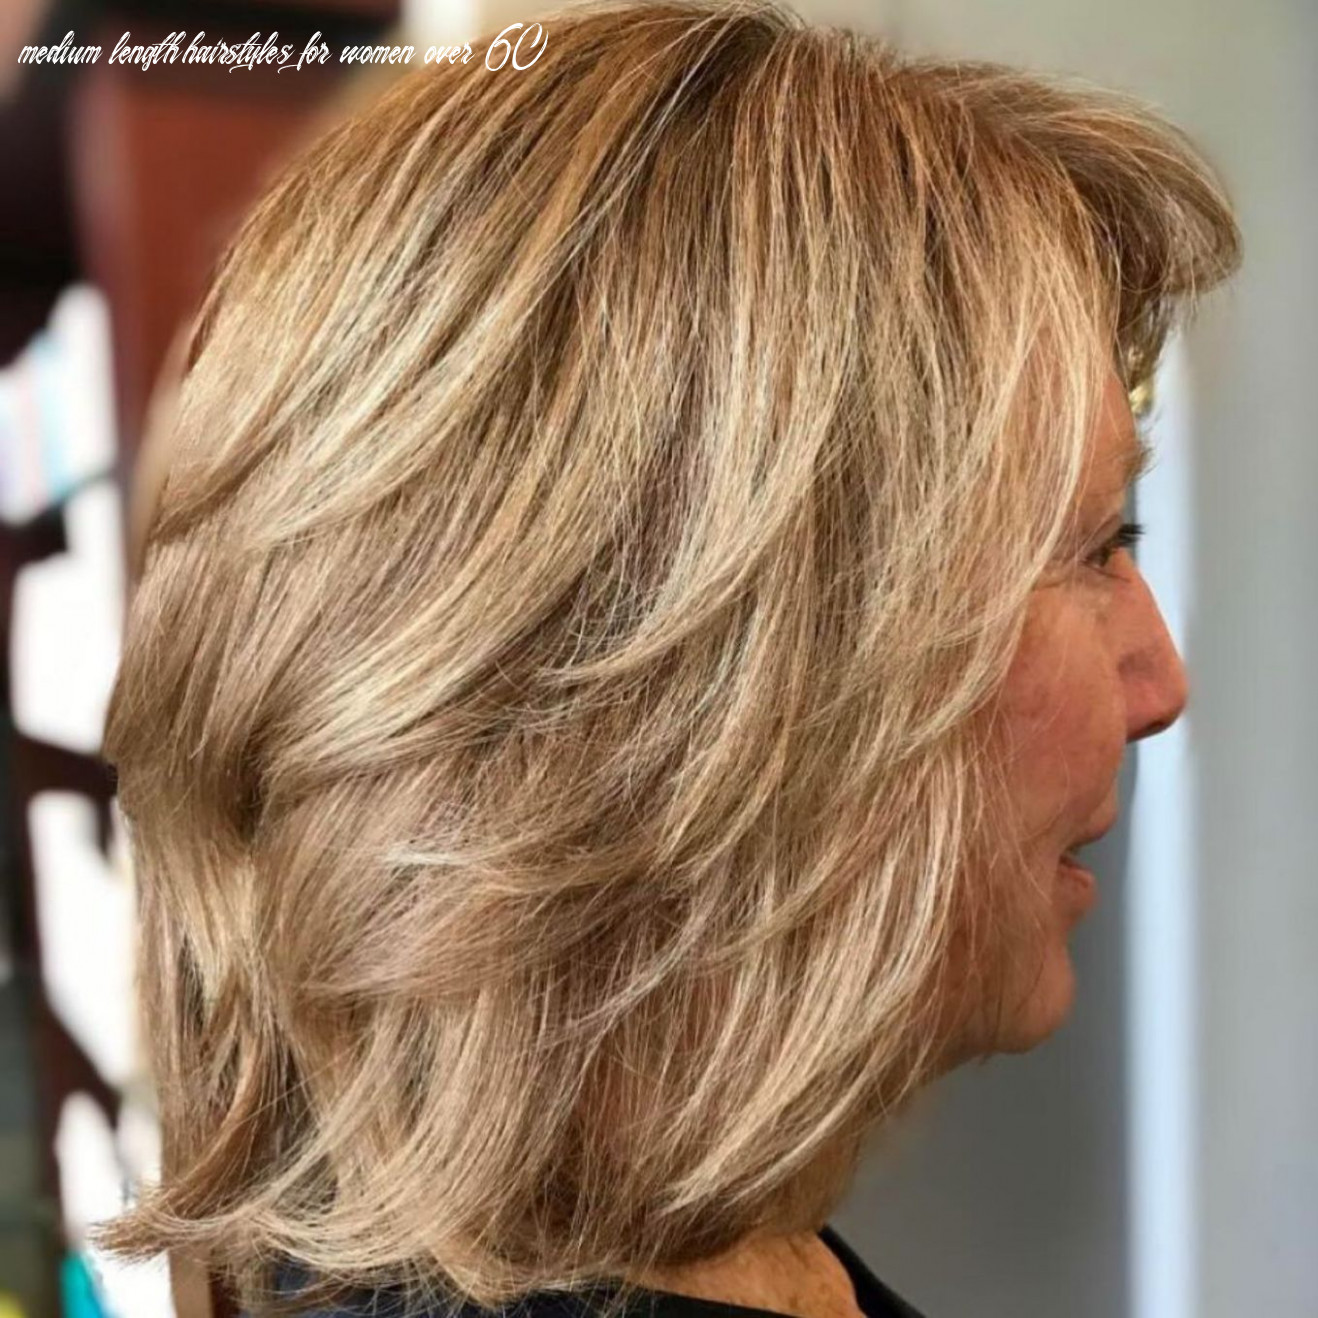 10 best hairstyles and haircuts for women over 10 to suit any